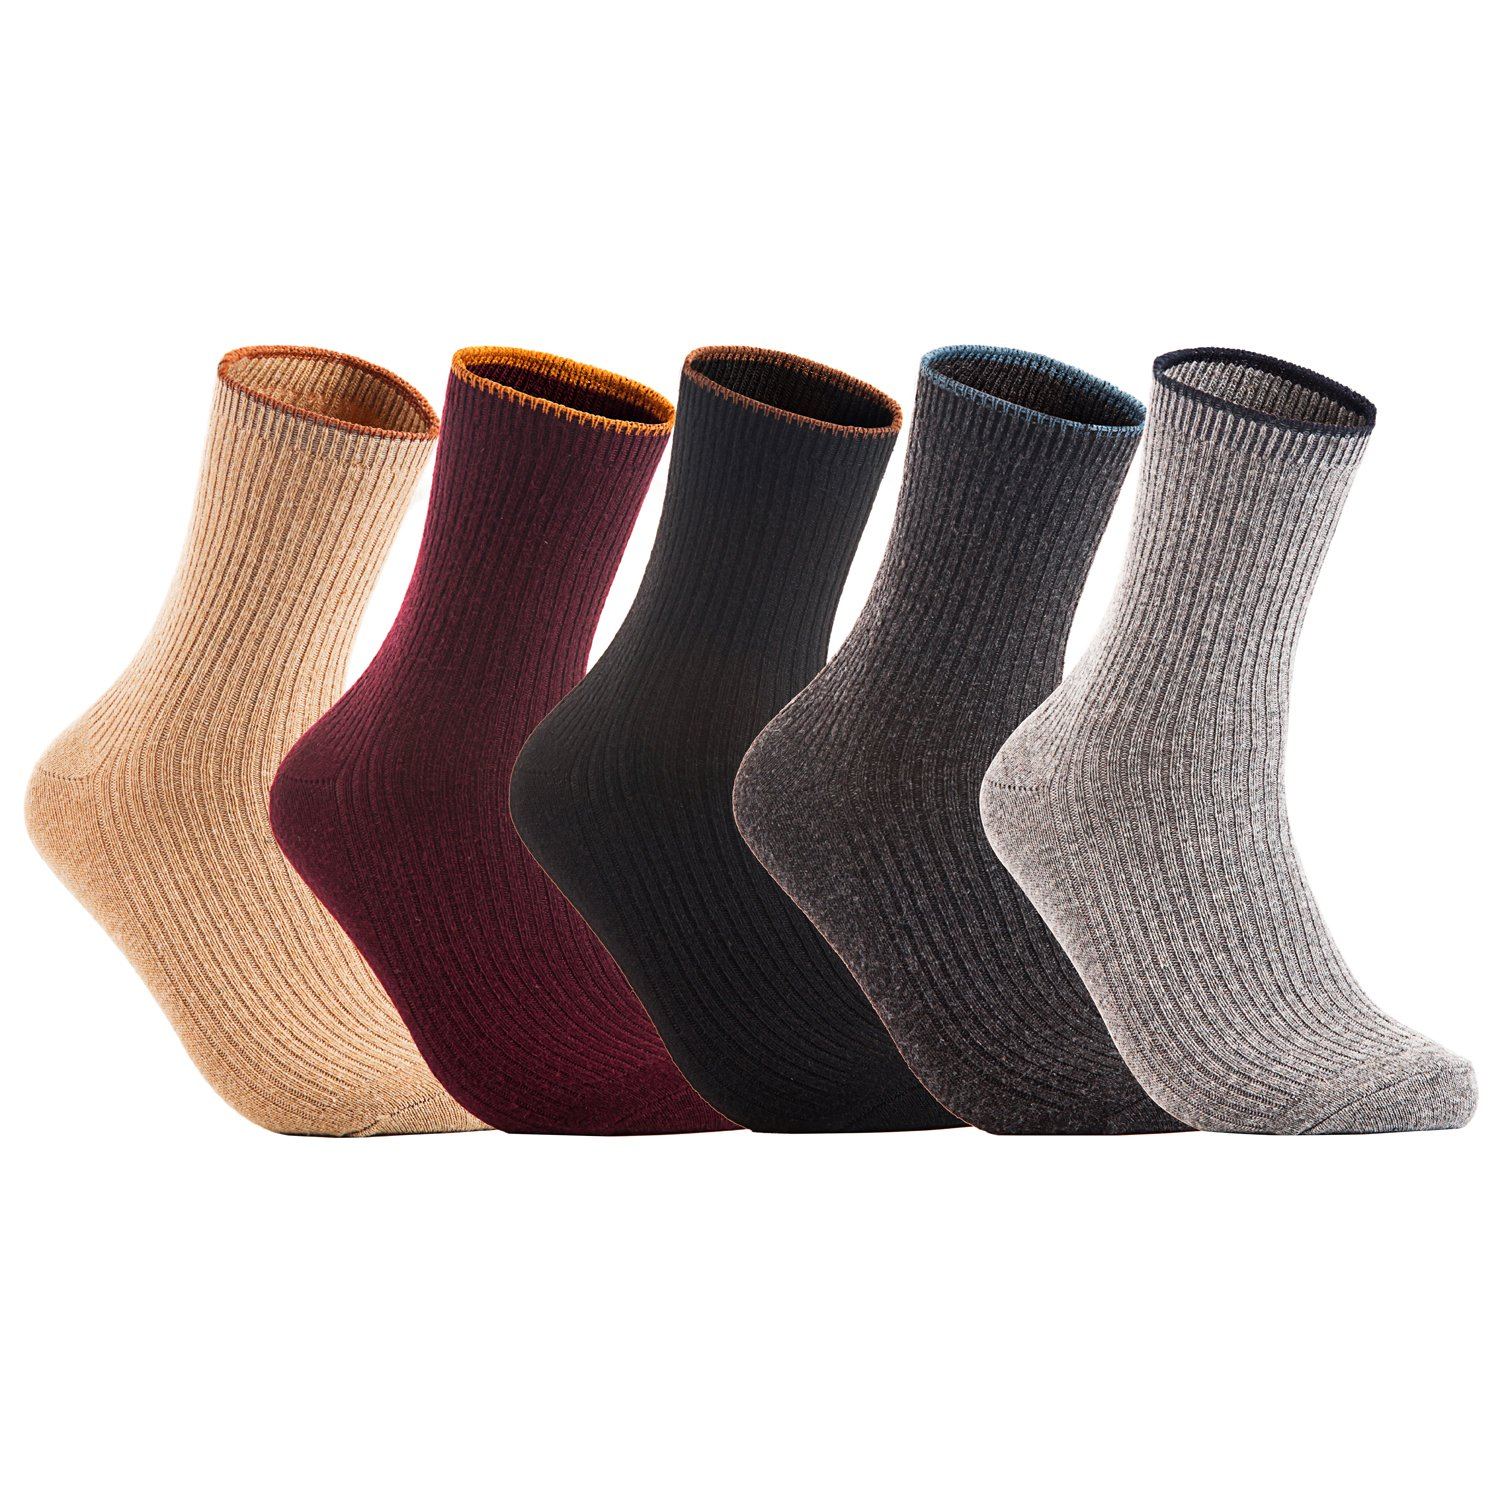 Meso Big Girl's 3 Pairs Cashmere Wool Crew Socks MHR1612 Casual Solid Size L/XL (Black, Dark Grey, Grey)